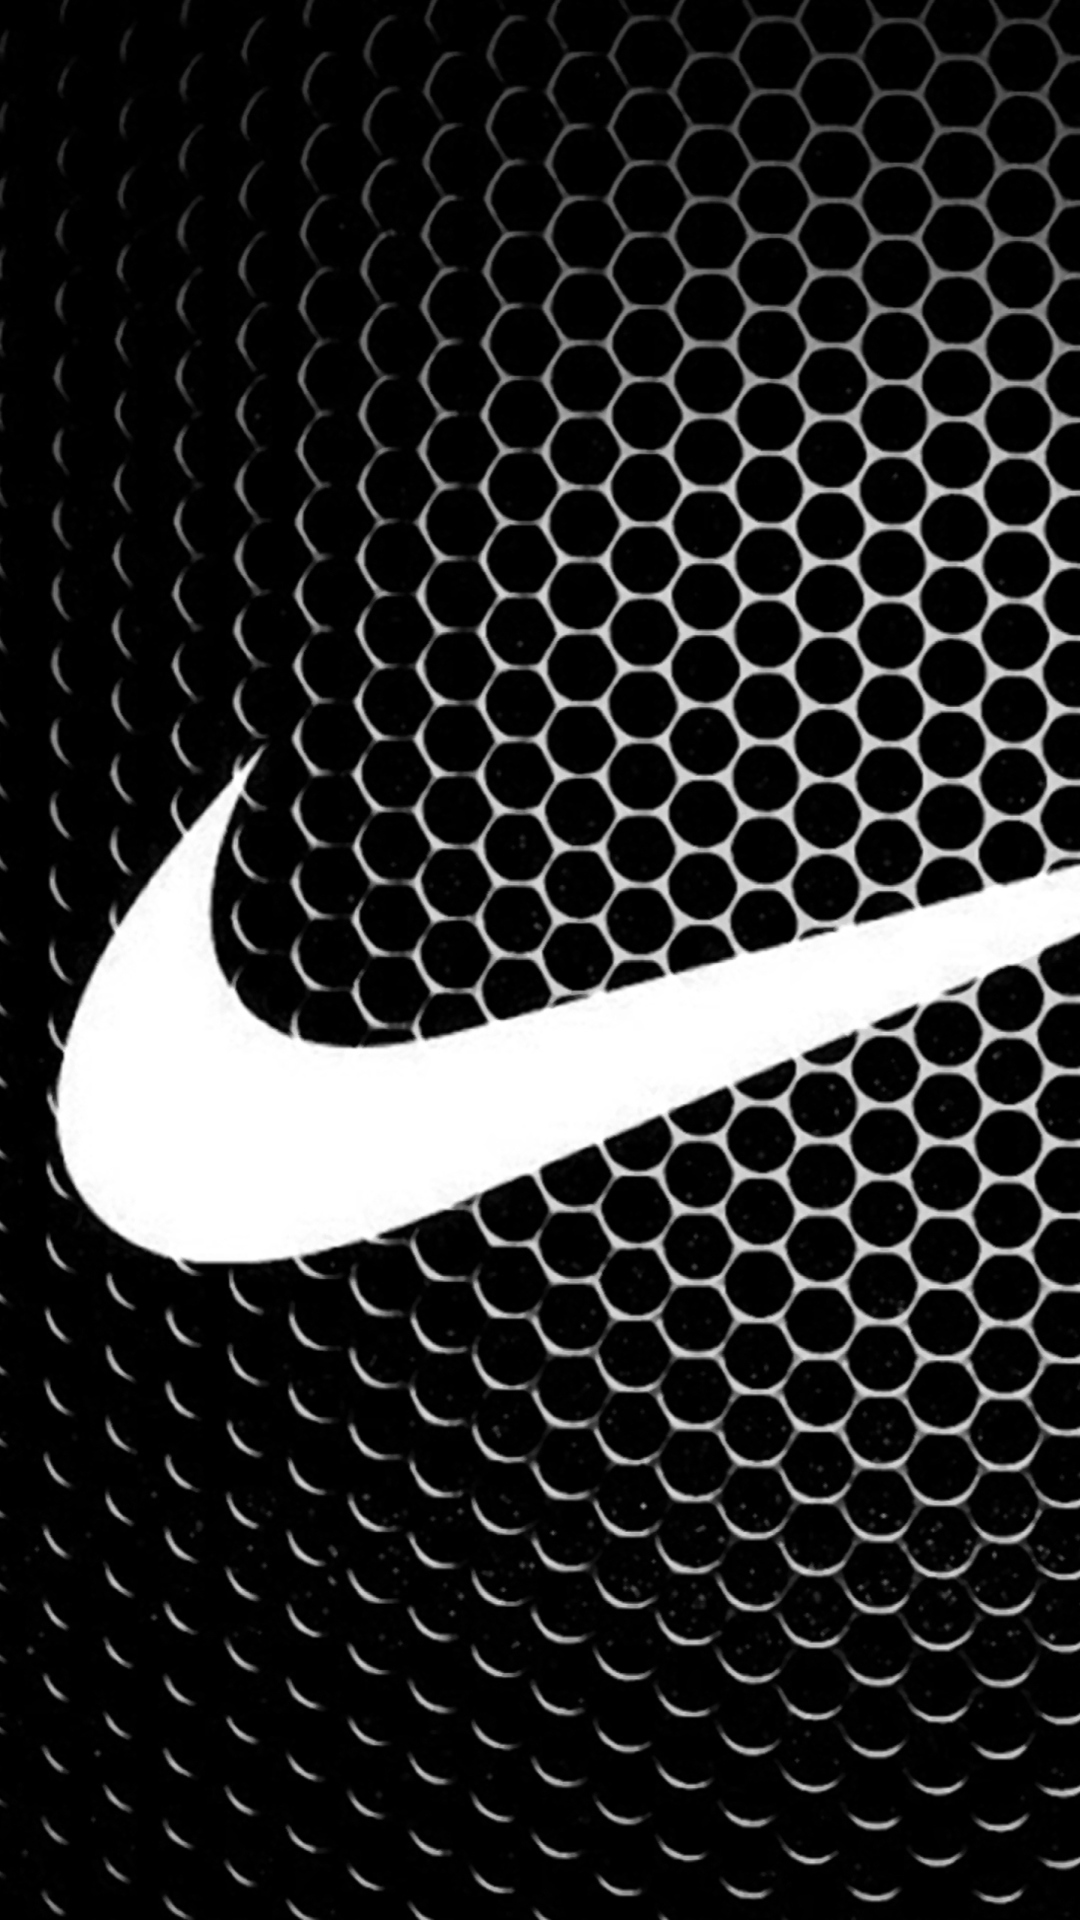 Kyrie Irving Wallpaper Iphone Download Free Nike Wallpapers For Iphone Pixelstalk Net